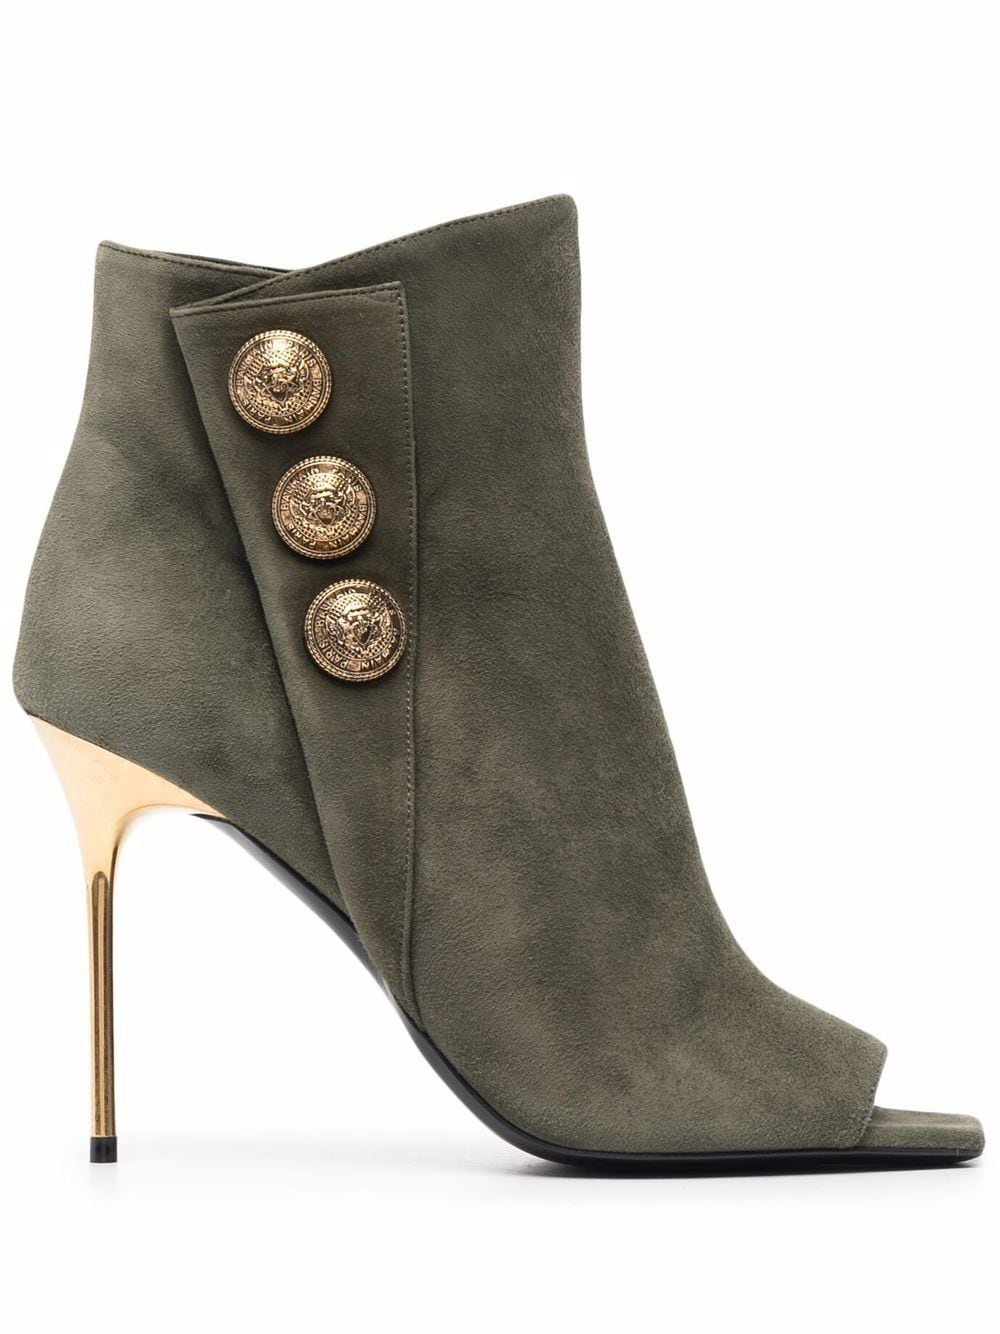 BALMAIN Military Green Suede Ankle Boot With Golden Embossed Buttons